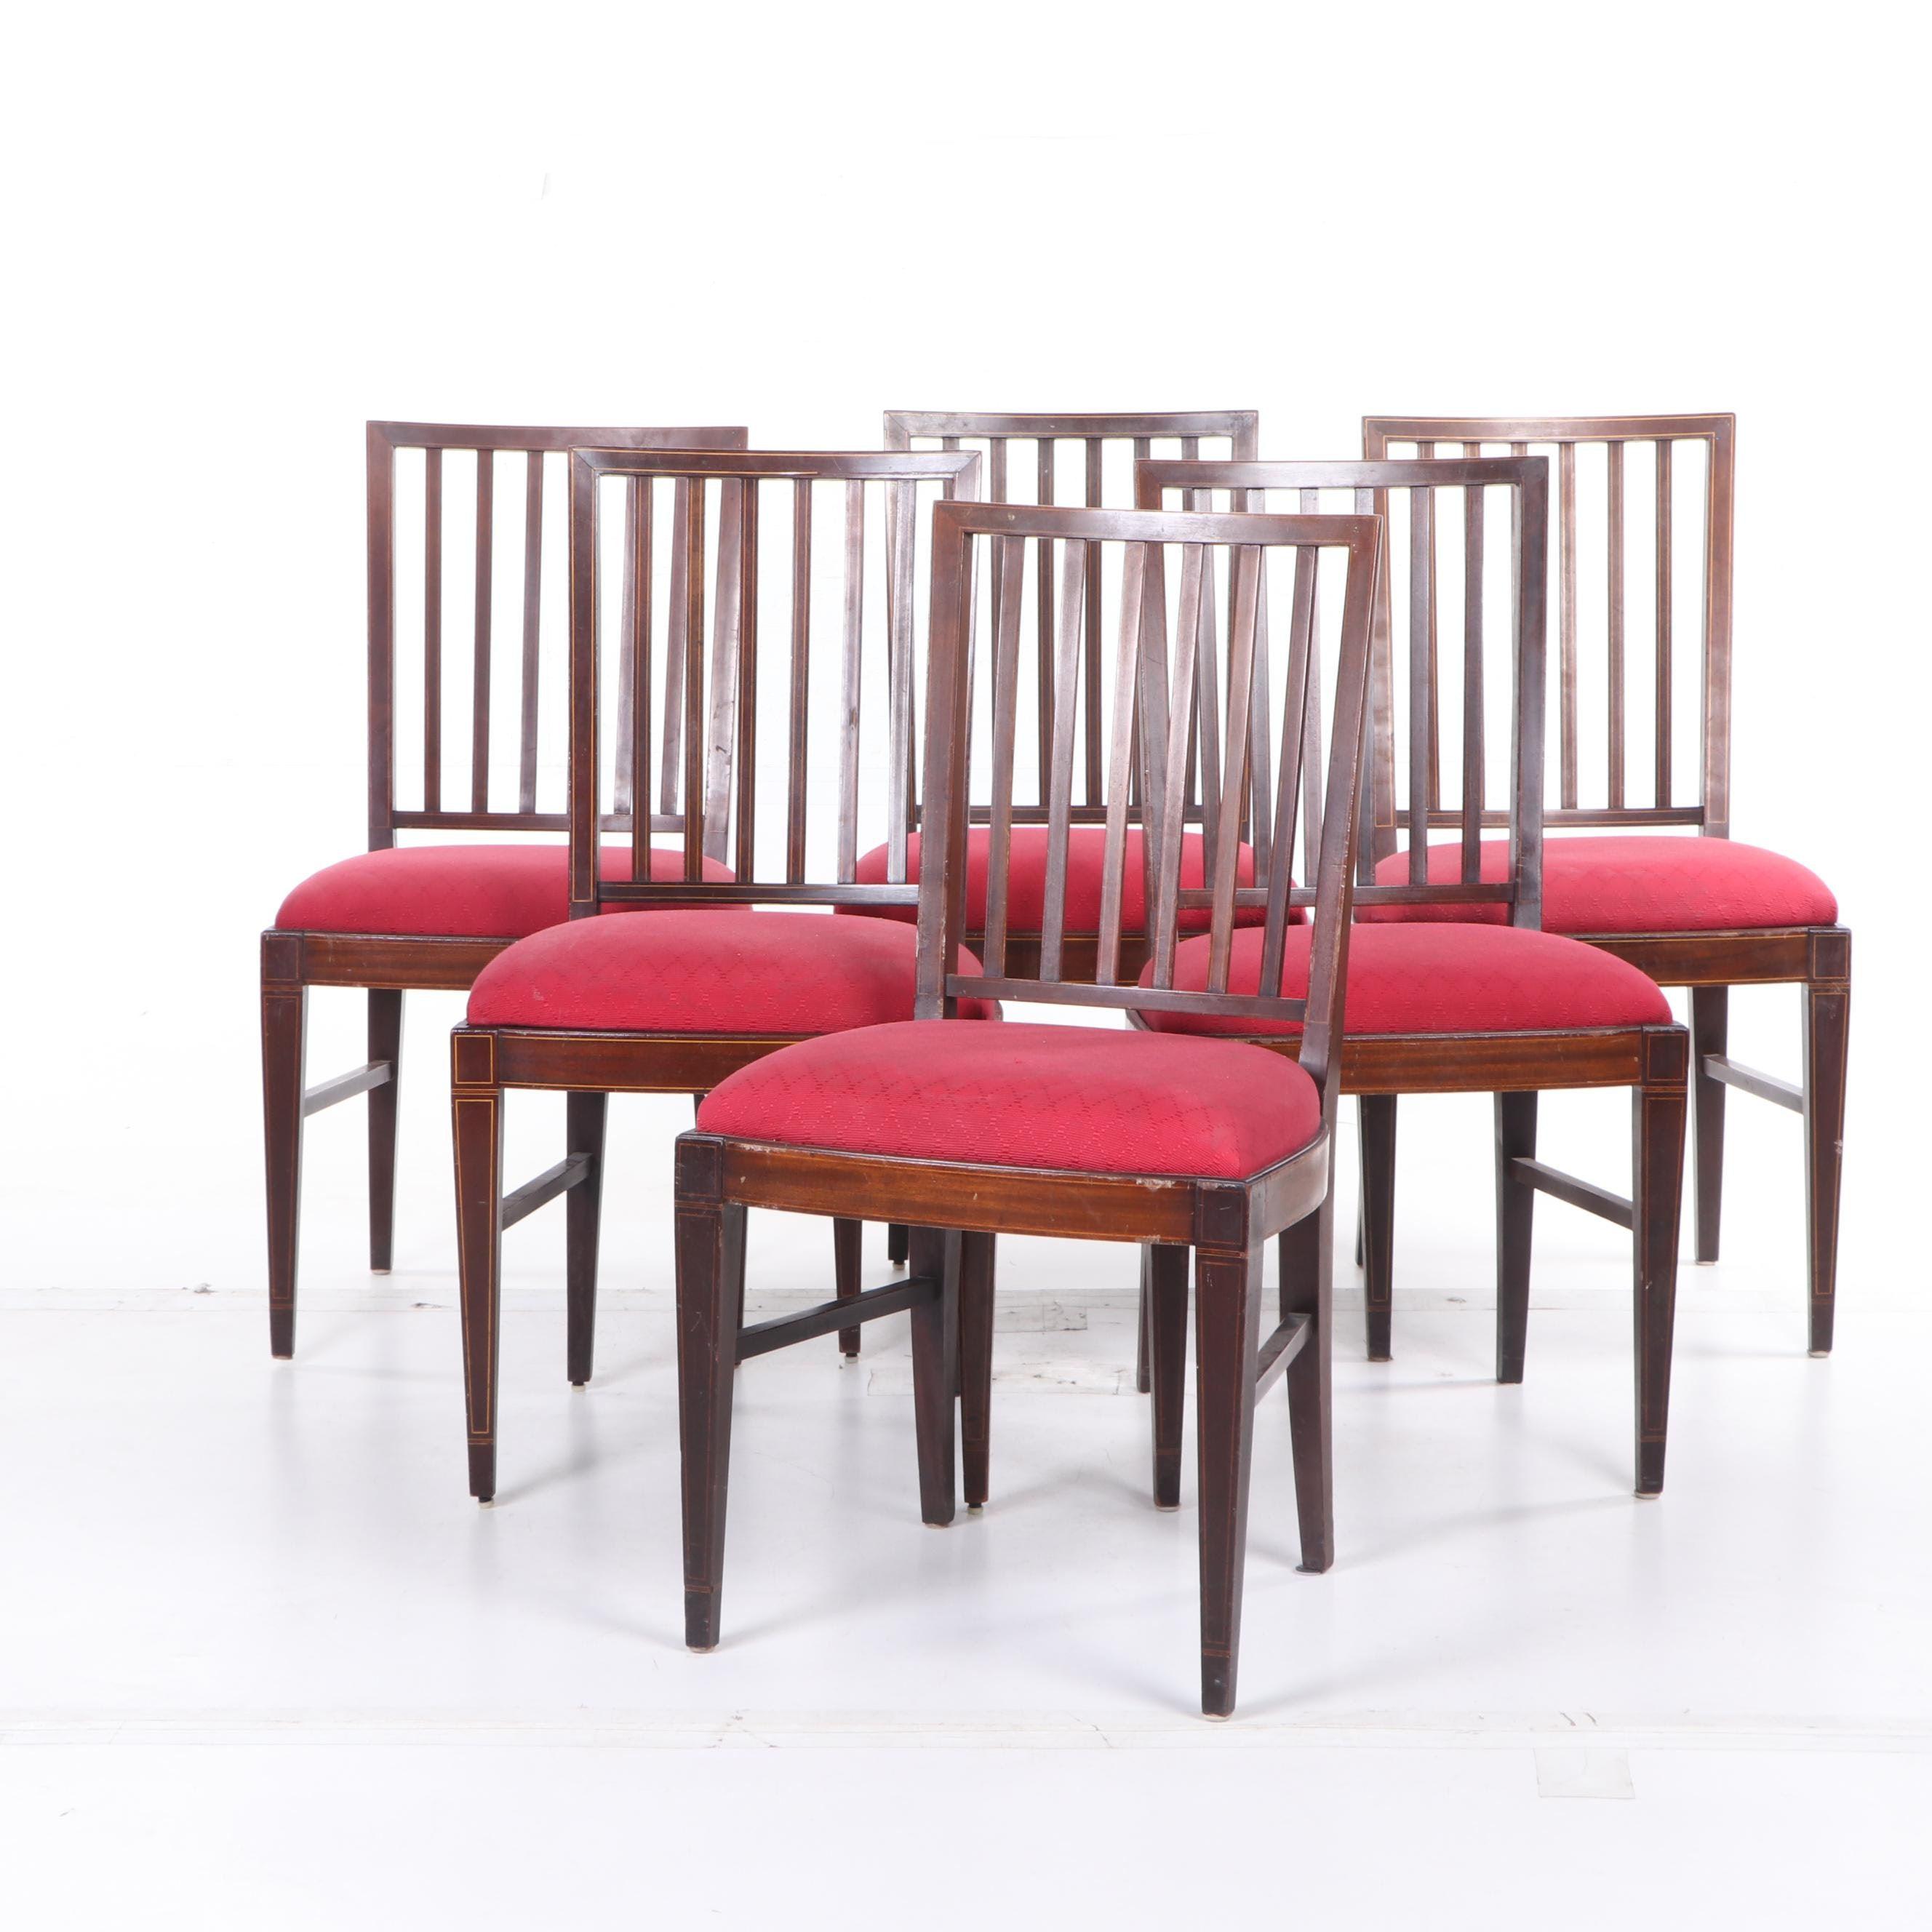 Federal Style Inlaid Mahogany Slat Back Dining Chairs, Mid 20th Century